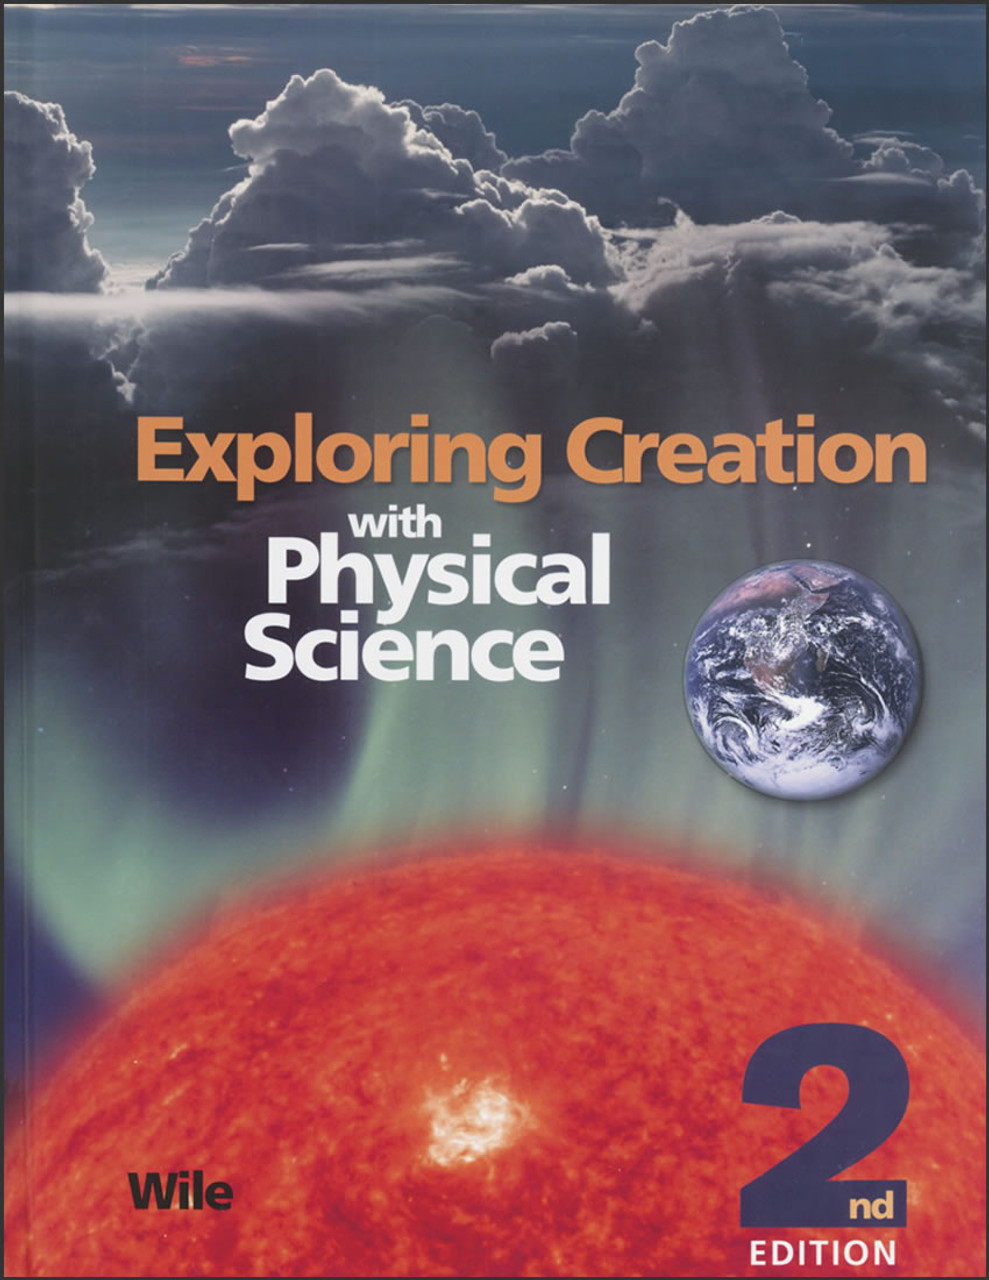 Exploring Creation with Physical Science, 2nd edition